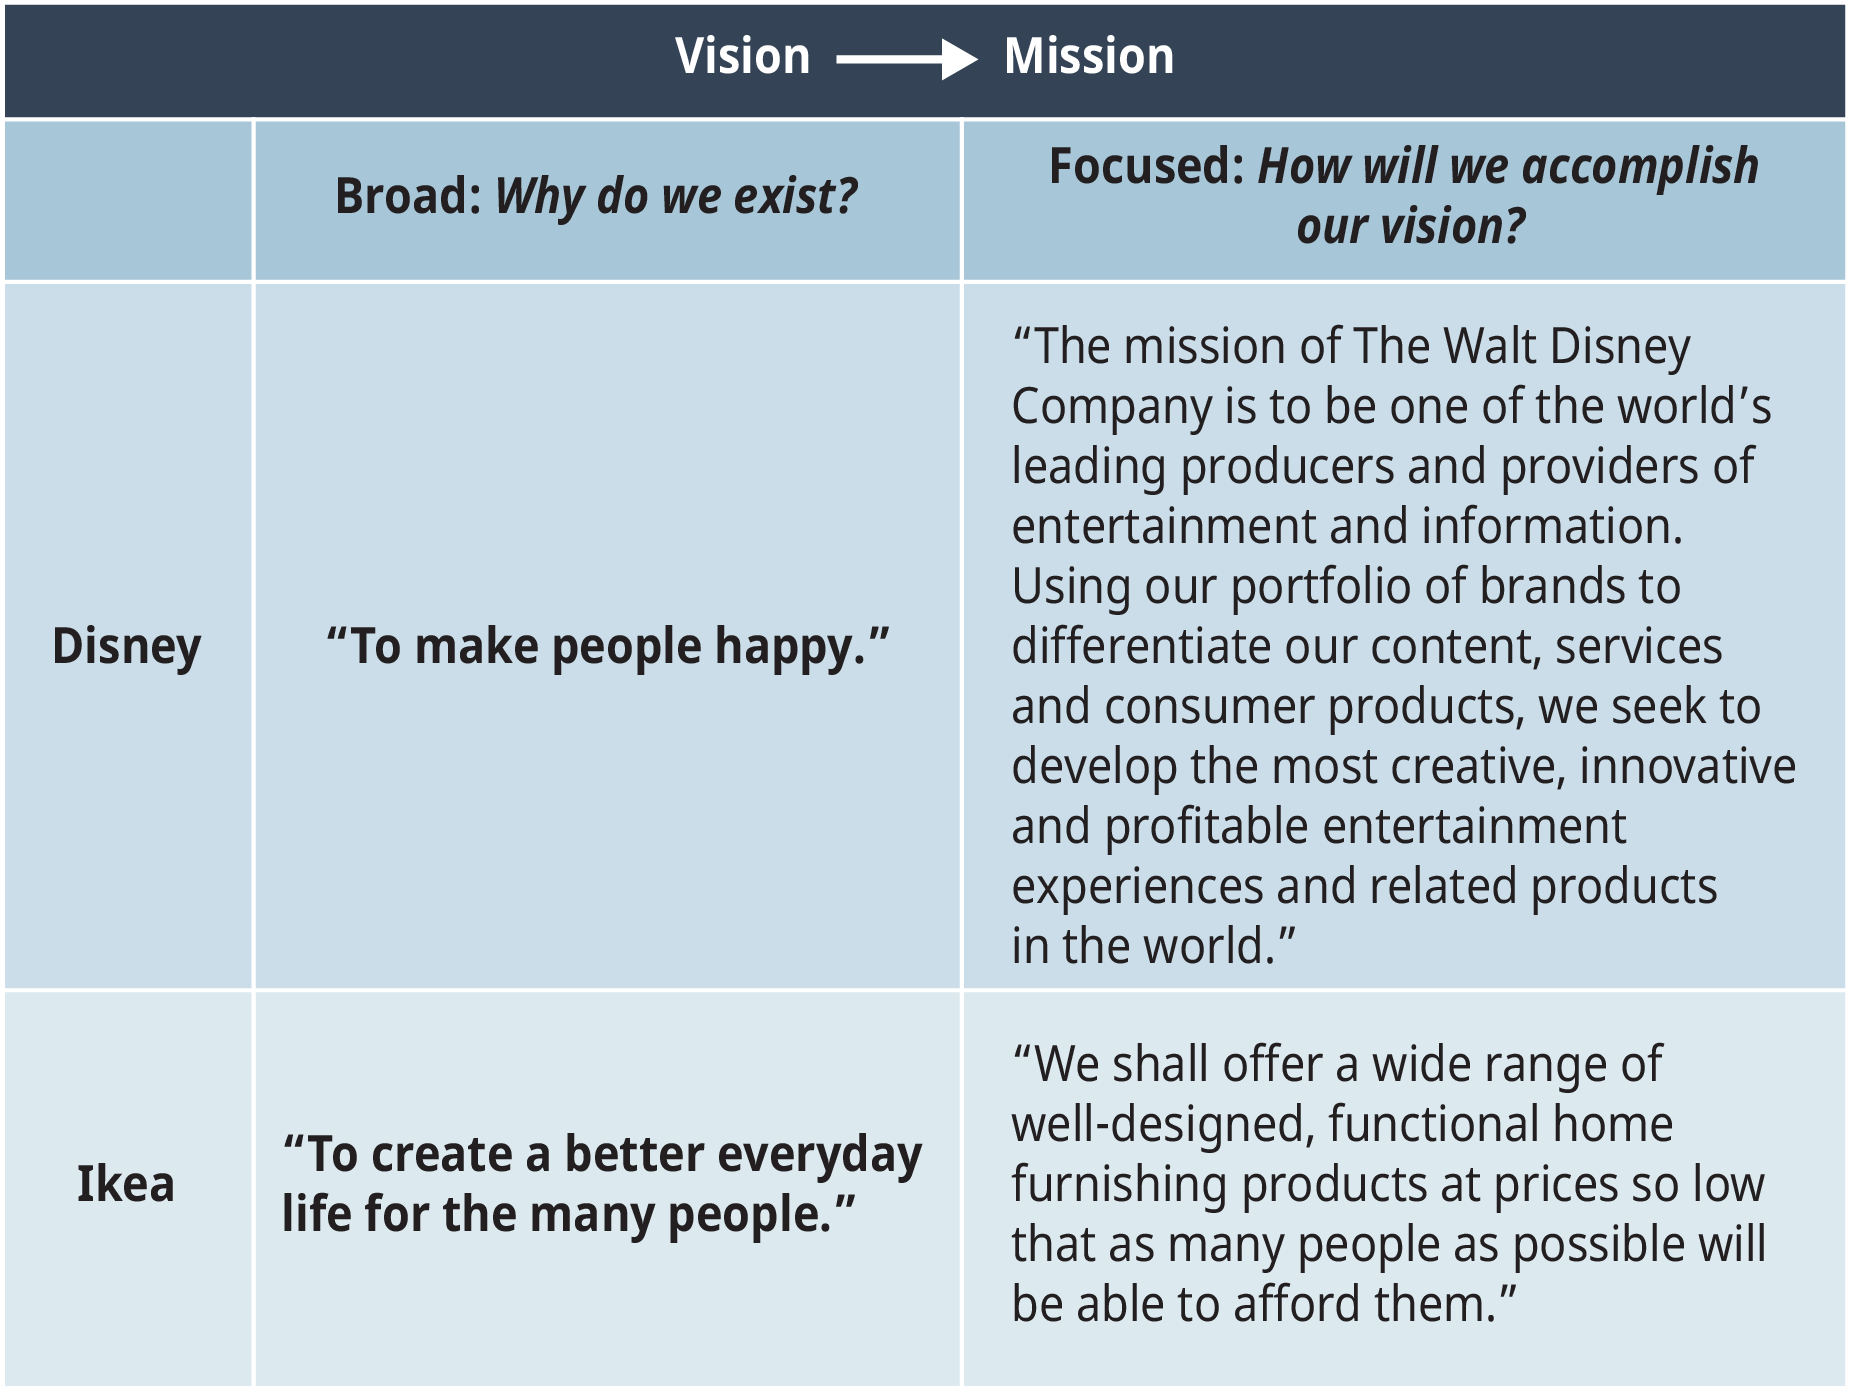 A diagram illustrates the vision and mission statements for the Walt Disney Company and Ikea.